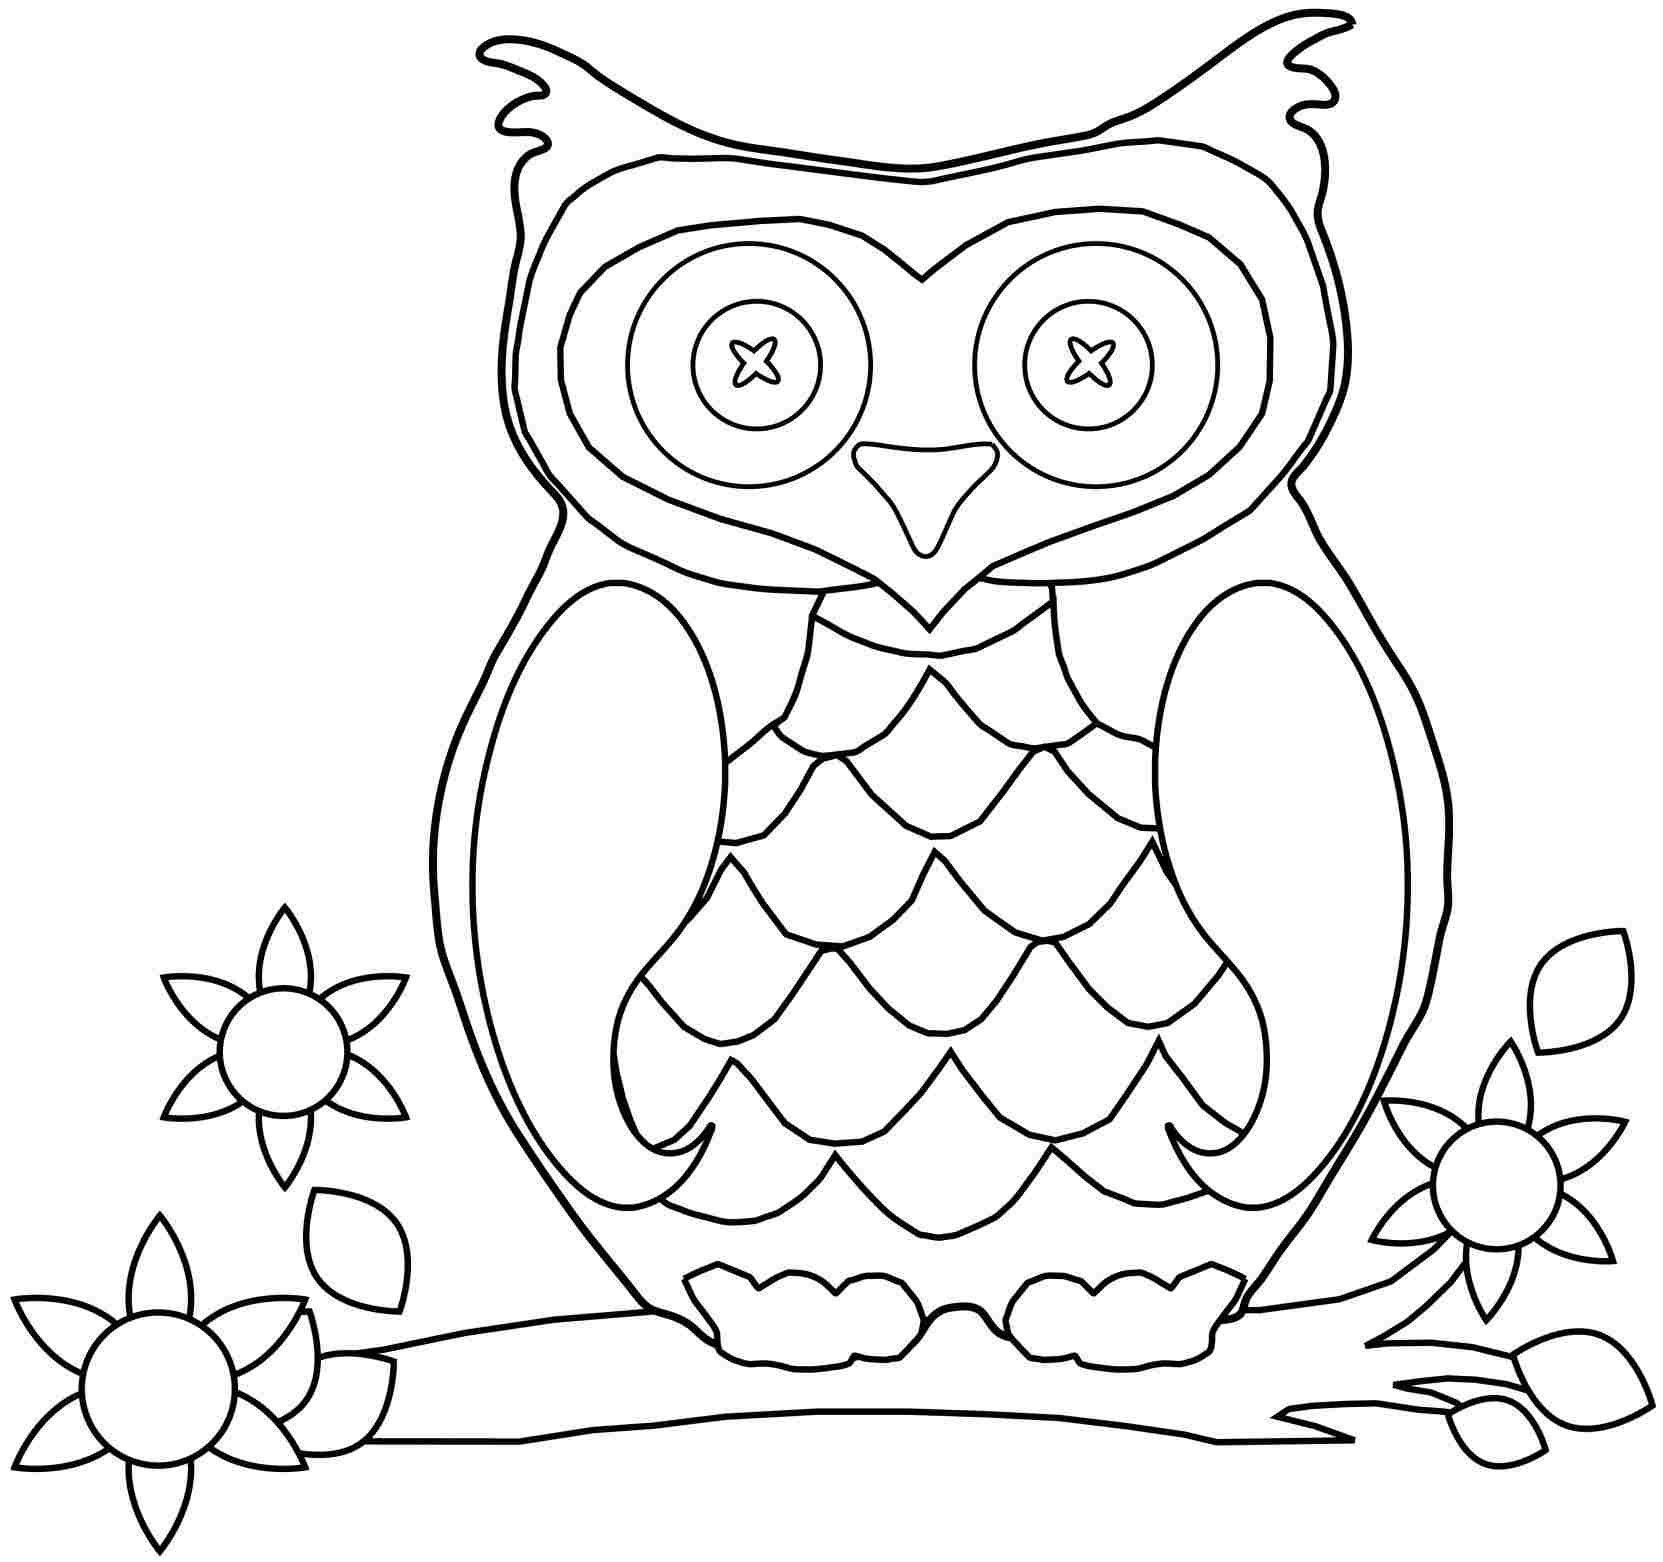 1663x1562 Easy Bird Coloring Pages Copy Elegant Excellent Bird Coloring